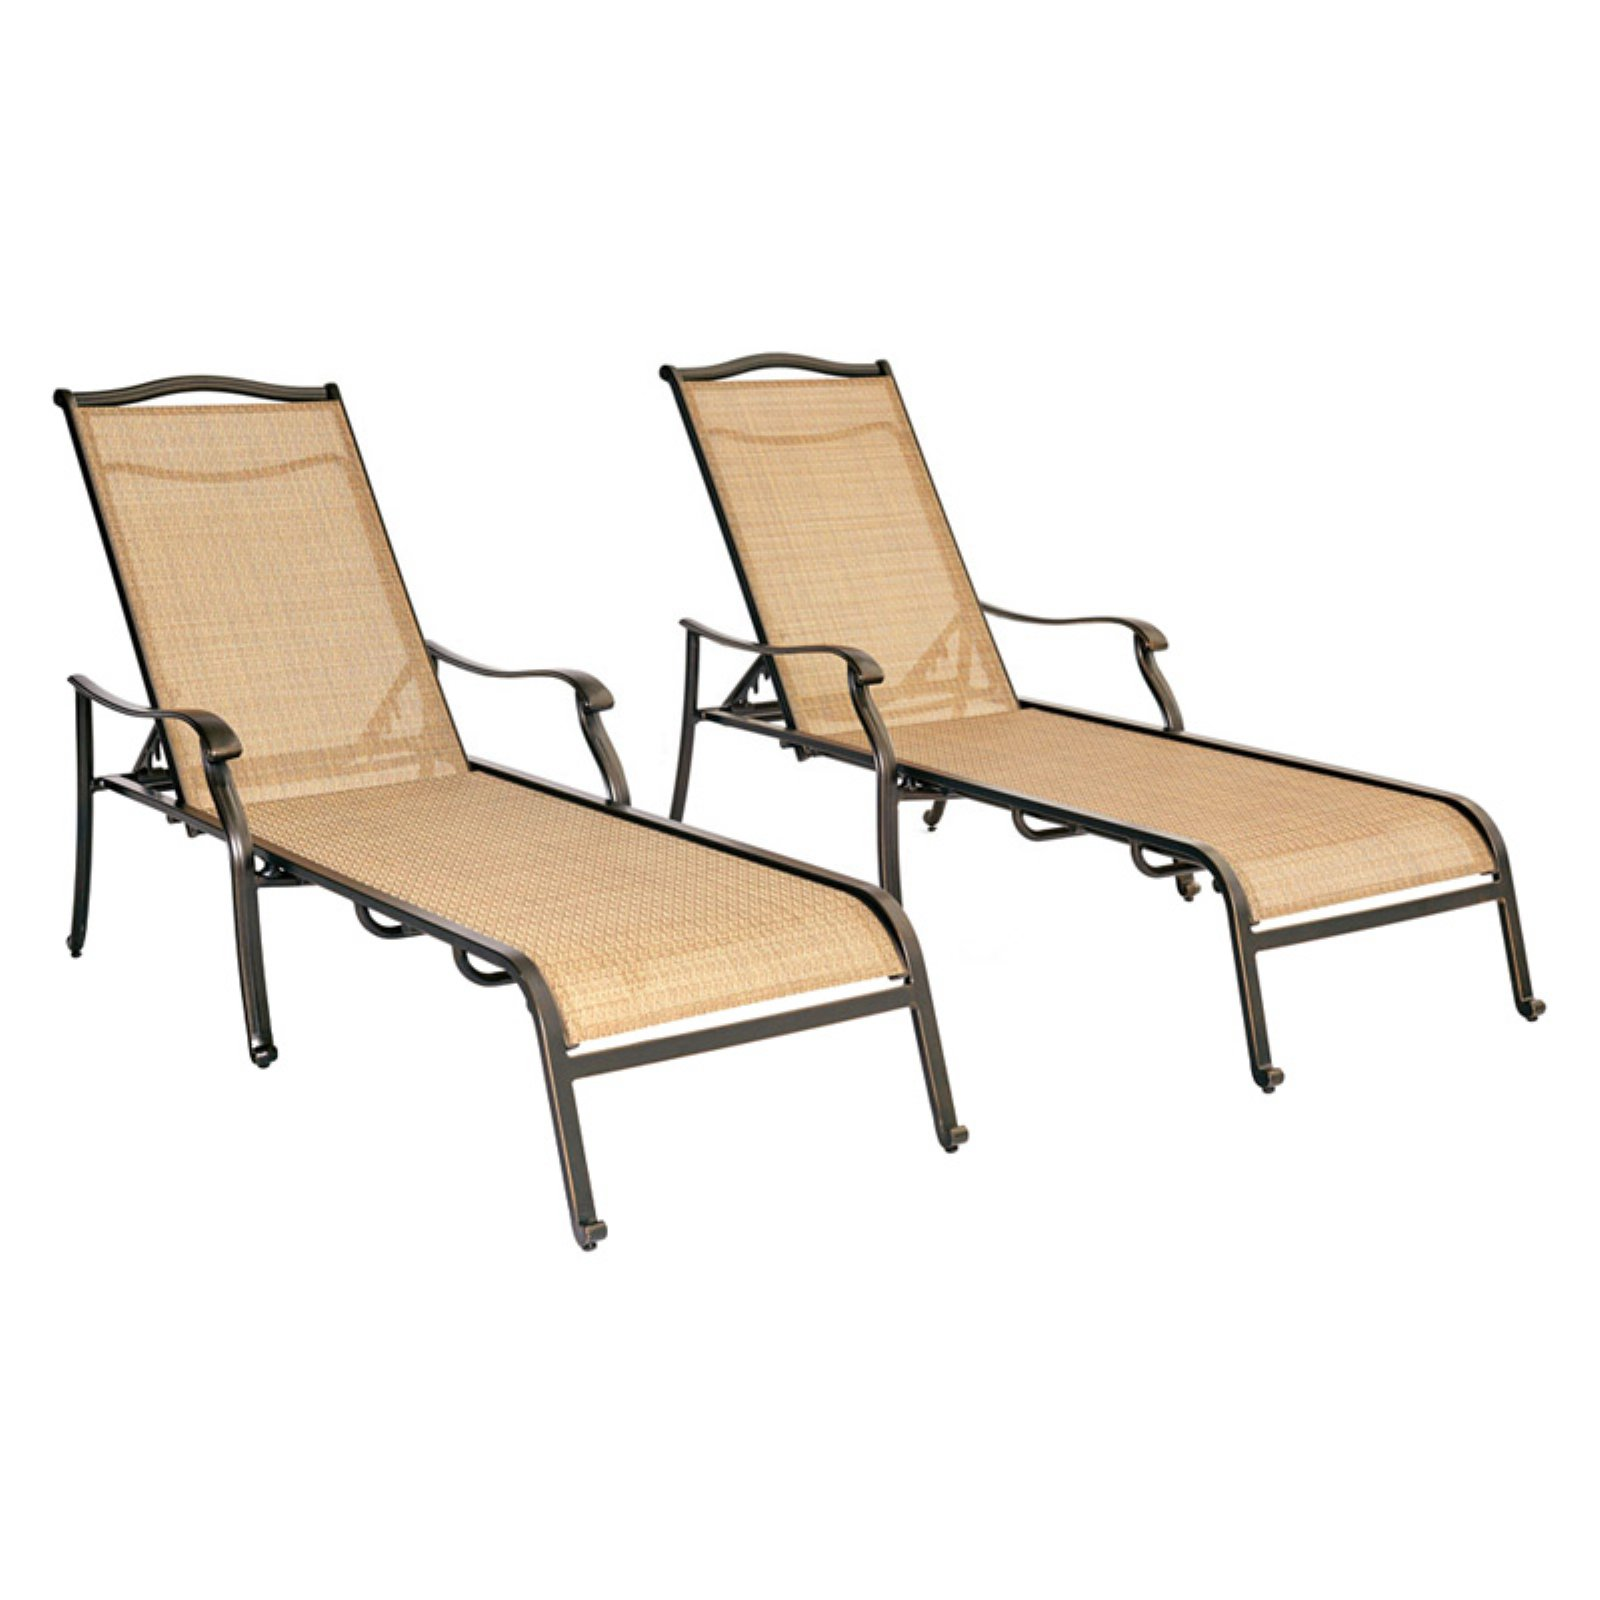 Hanover Monaco Set of 2 Sling-Back Chaise Lounge Chairs Neutral cedar / bronze MONCHS2PC